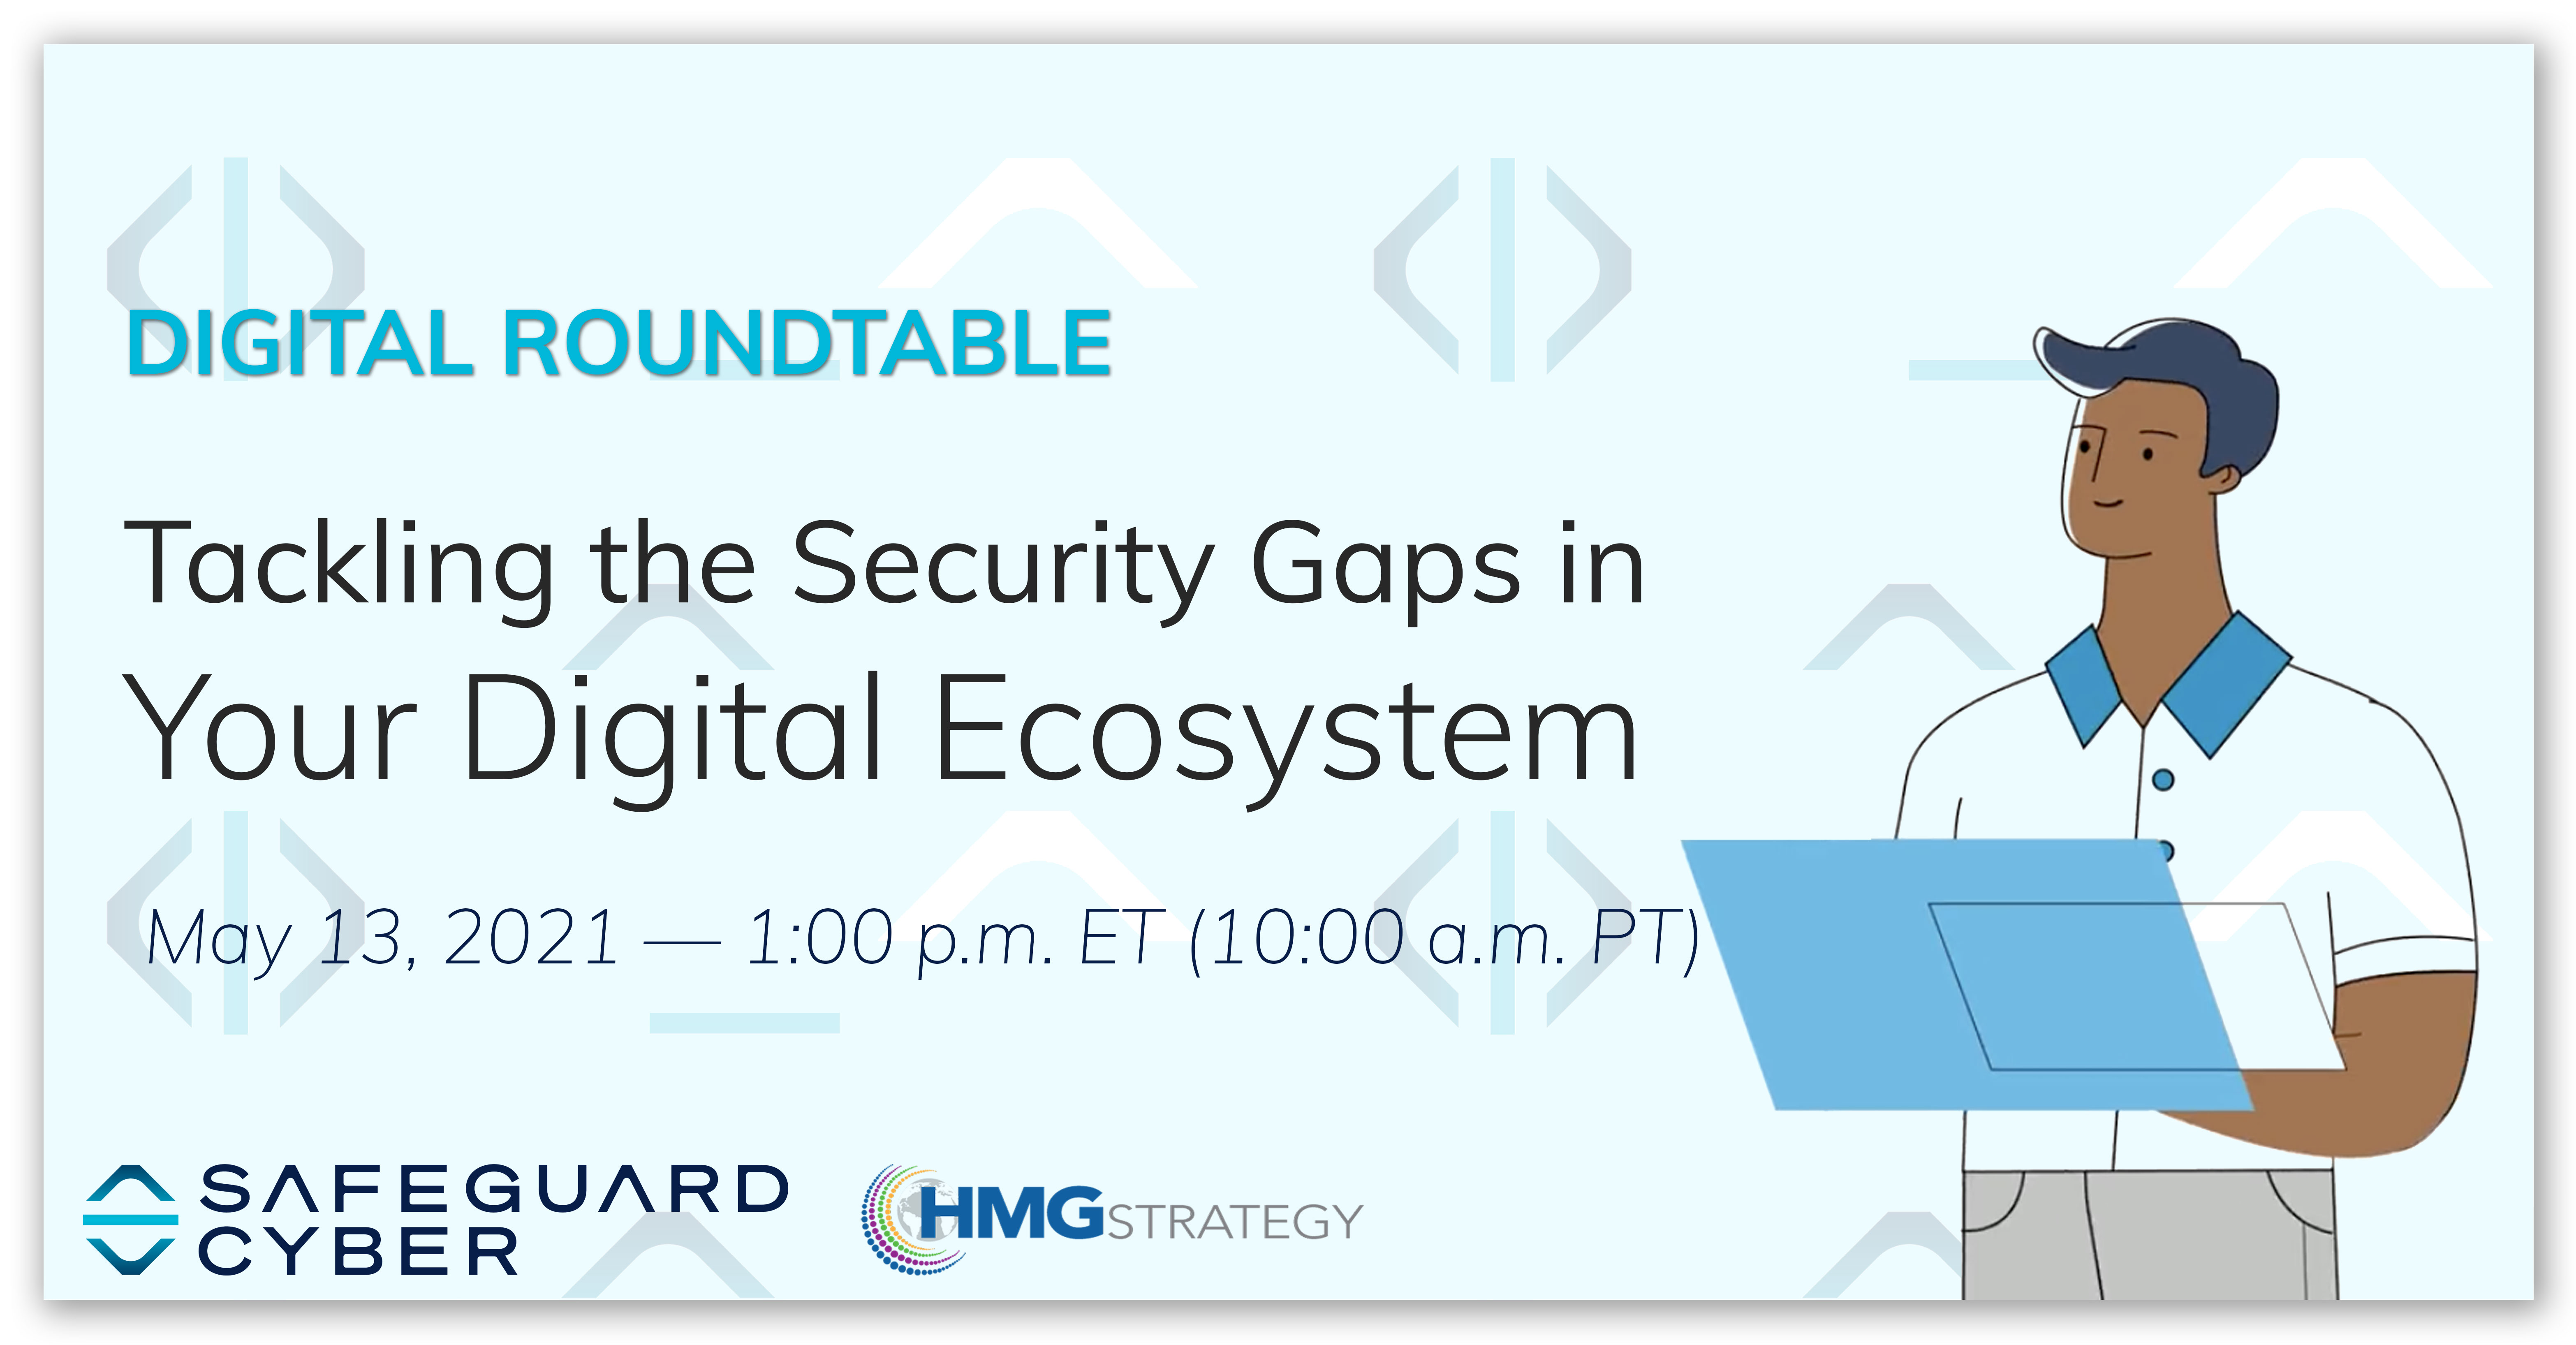 Safeguard-Cyber-Roundtable